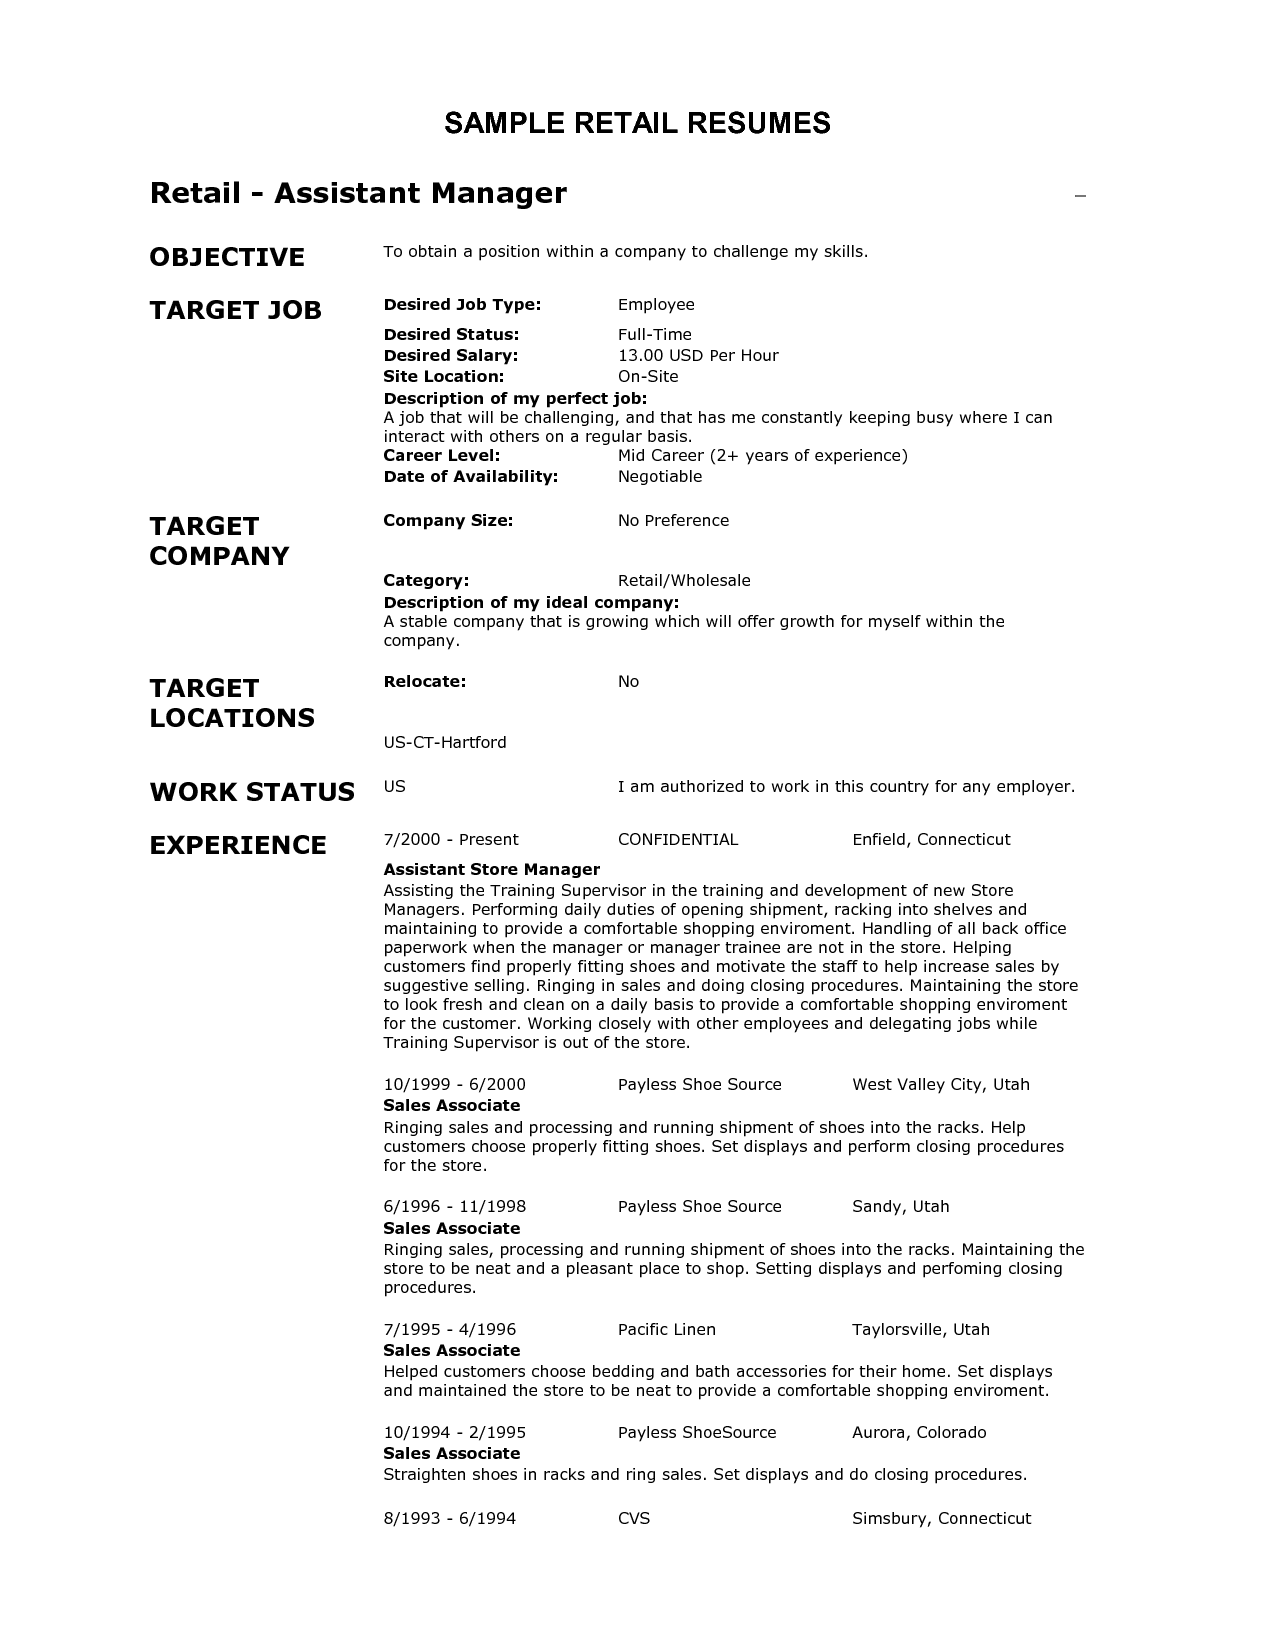 objectives for resumes in retail examples of resumes for retail jobs